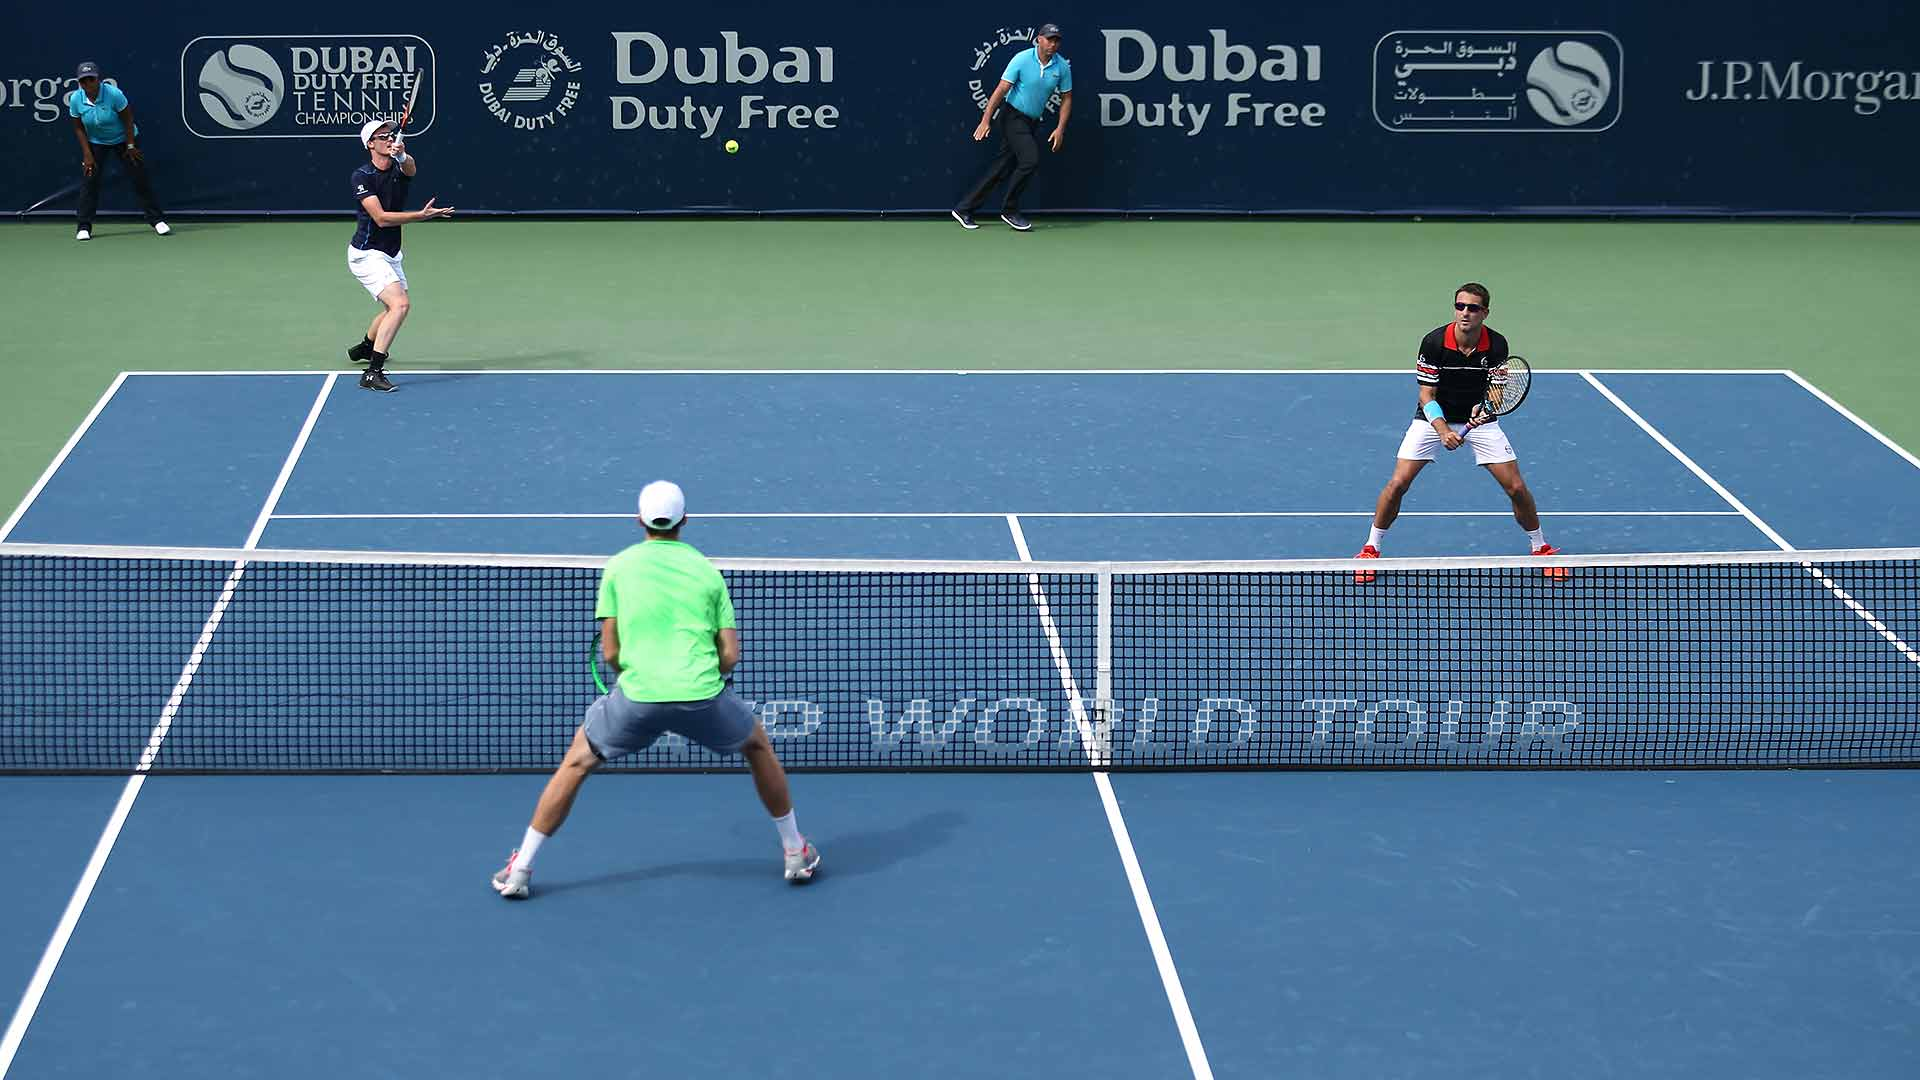 Jamie Murray and Tommy Robredo advance in Dubai.